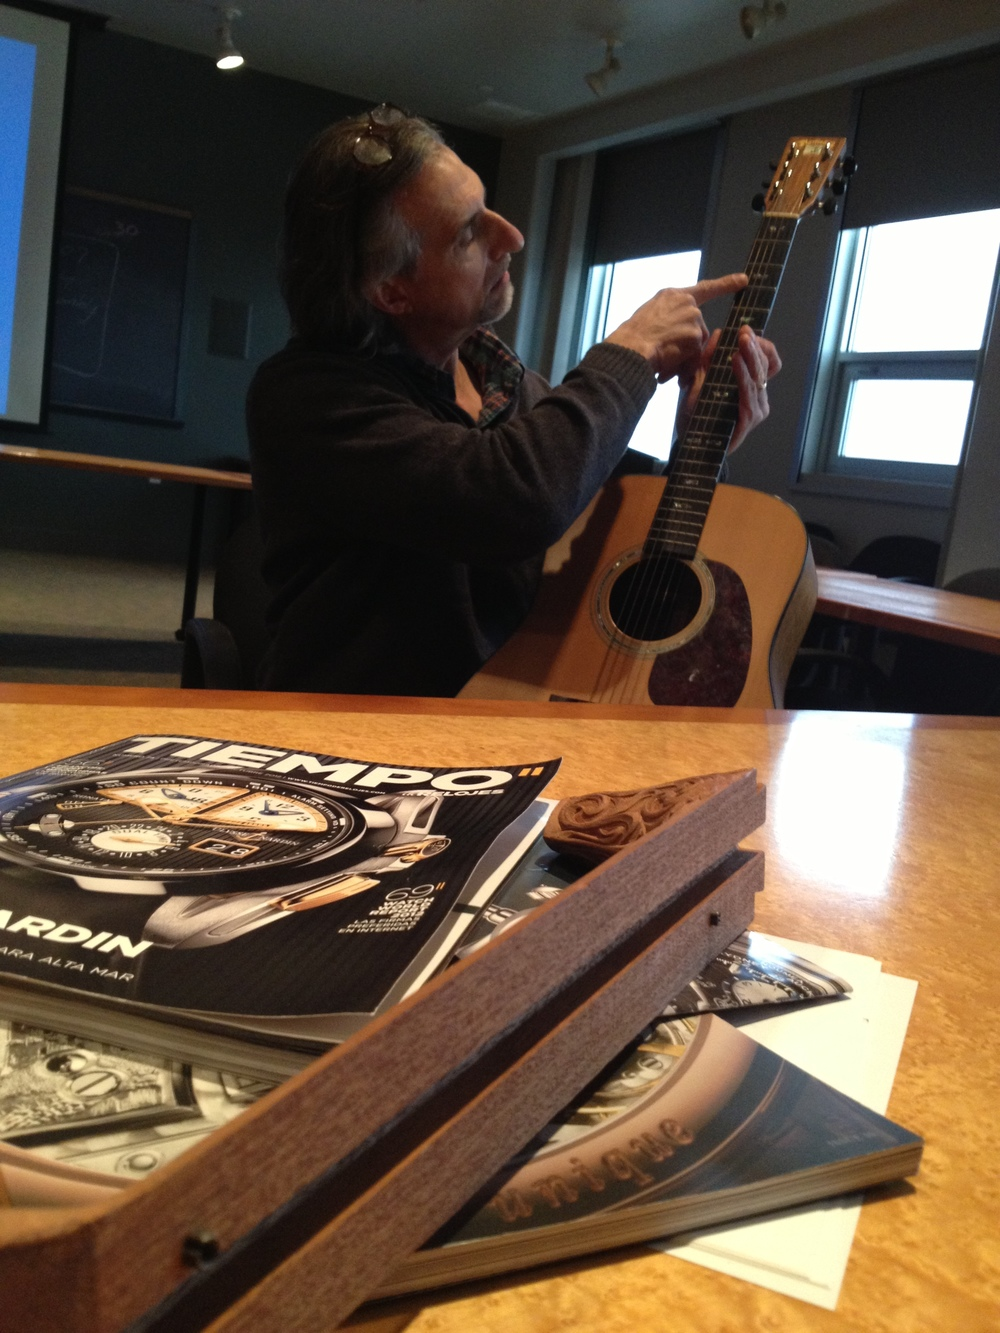 Robert Goetzl brainstorms the inclusion of special components and materials across the guitar platform.